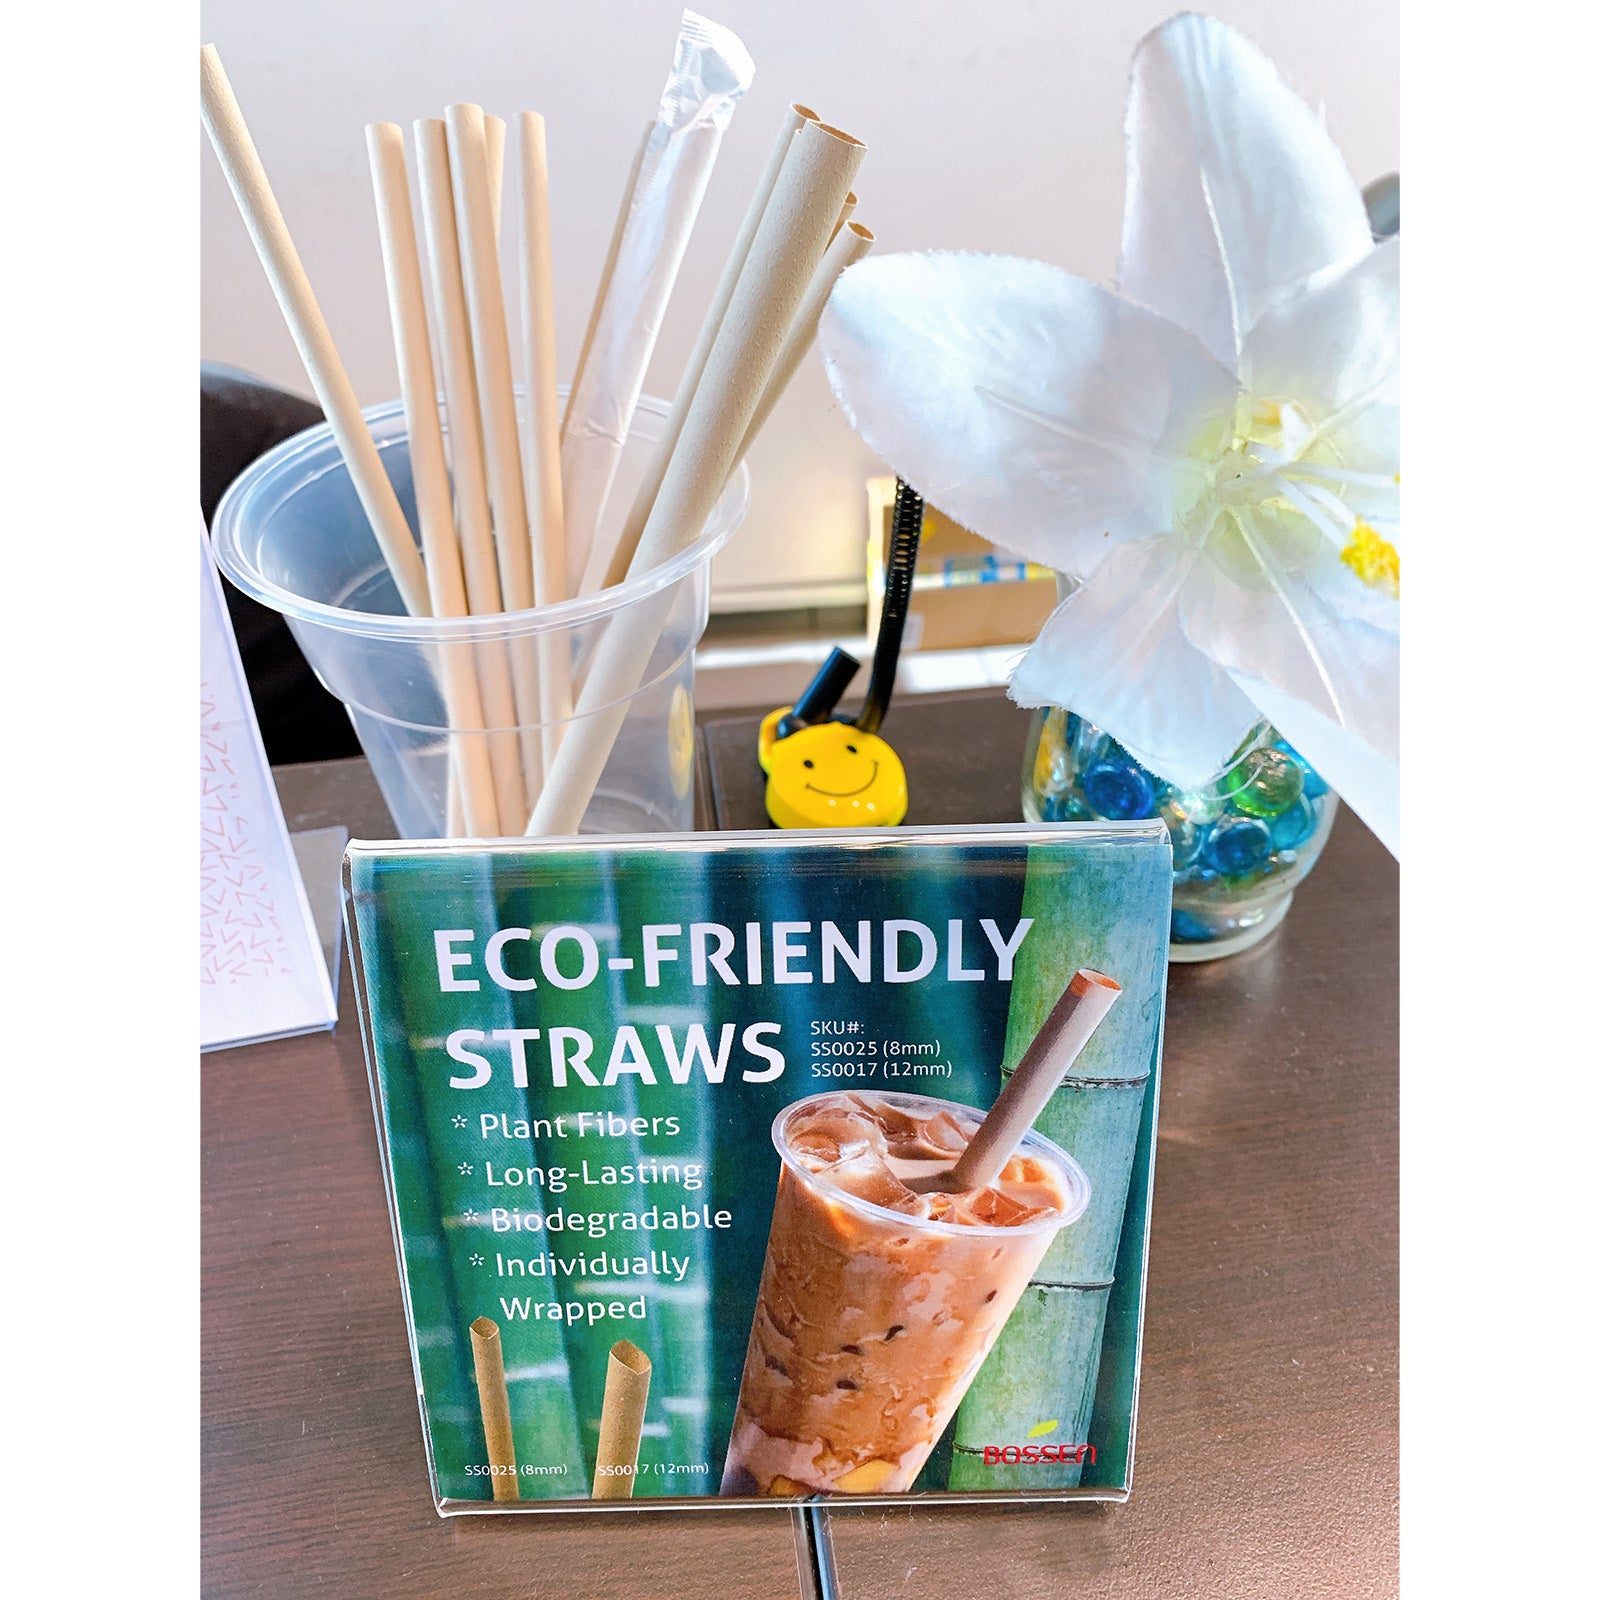 Eco-Friendly Straws, 8mm Paper Wrapped (21cm) in use